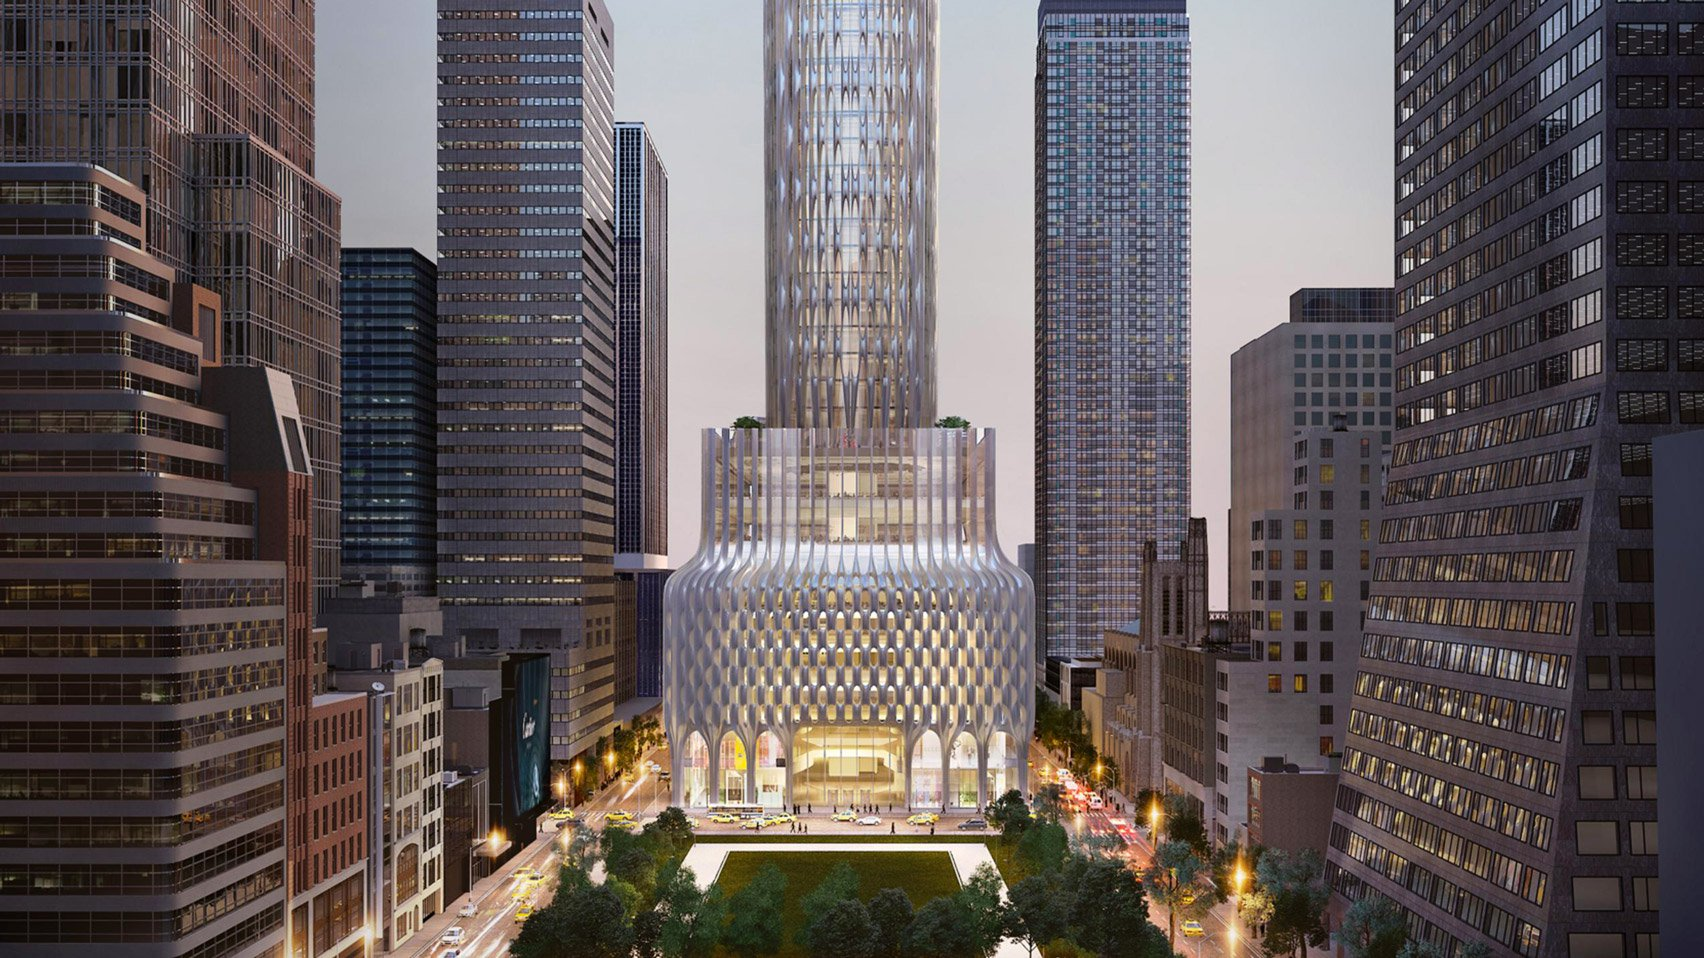 A rendering of the proposed rebuilt 666 Fifth Avenue in New York City.